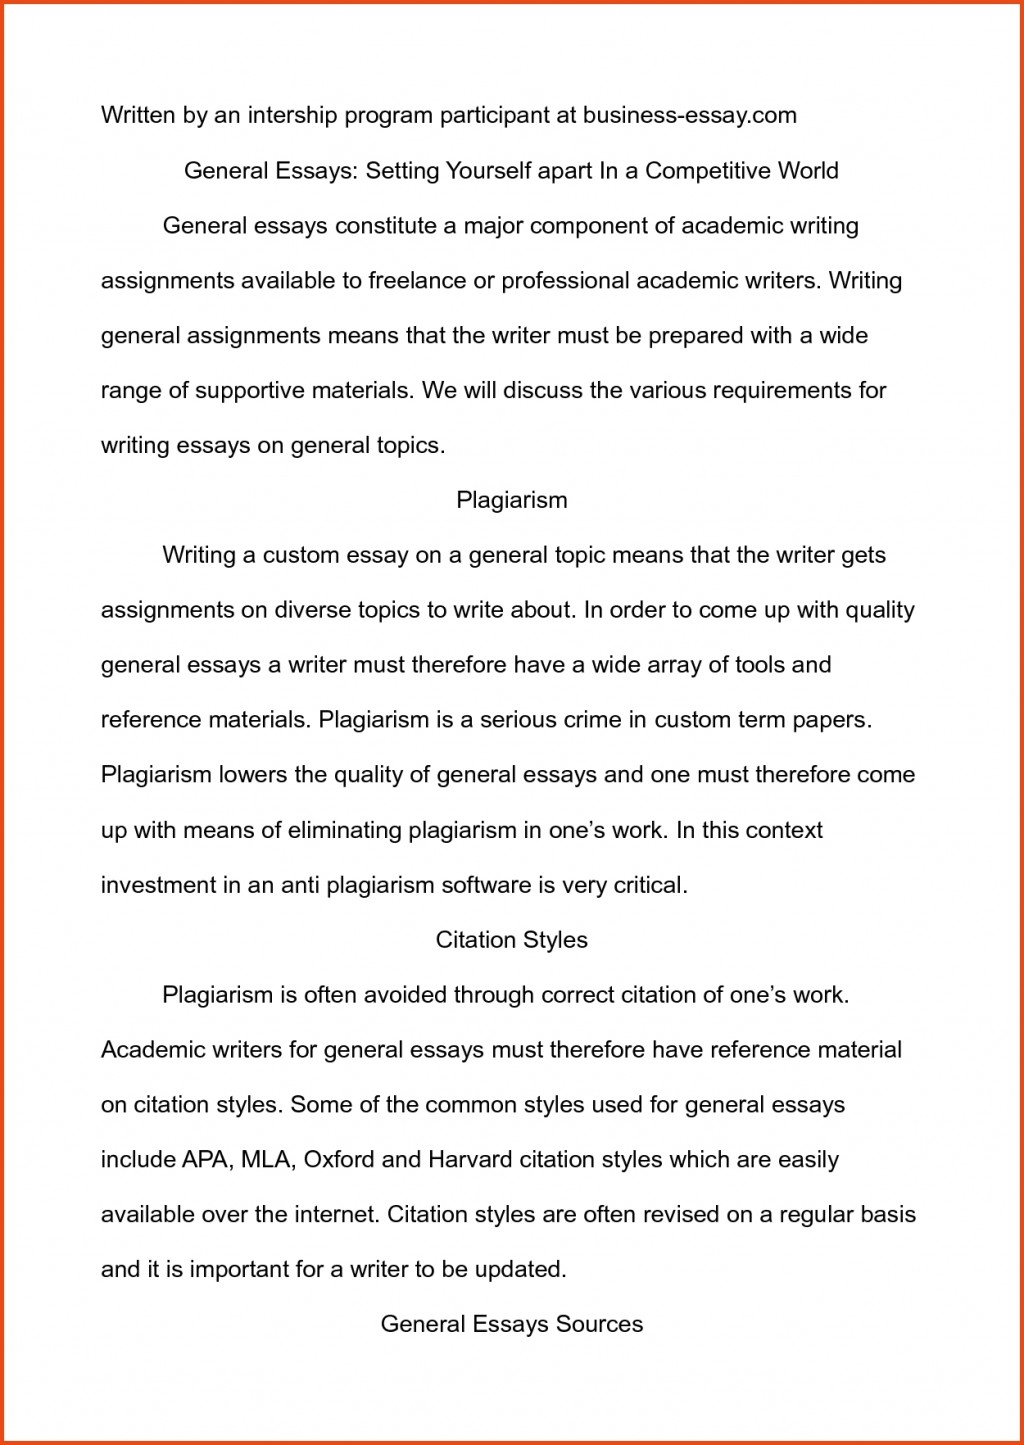 006 Essay Describing Yourself An Historical Architecture Cv On Sample Myself Writing Introducing Essays About Introduce Intended For College Exam Pdf In French Hindi Example Unusual Introduction Urdu Large